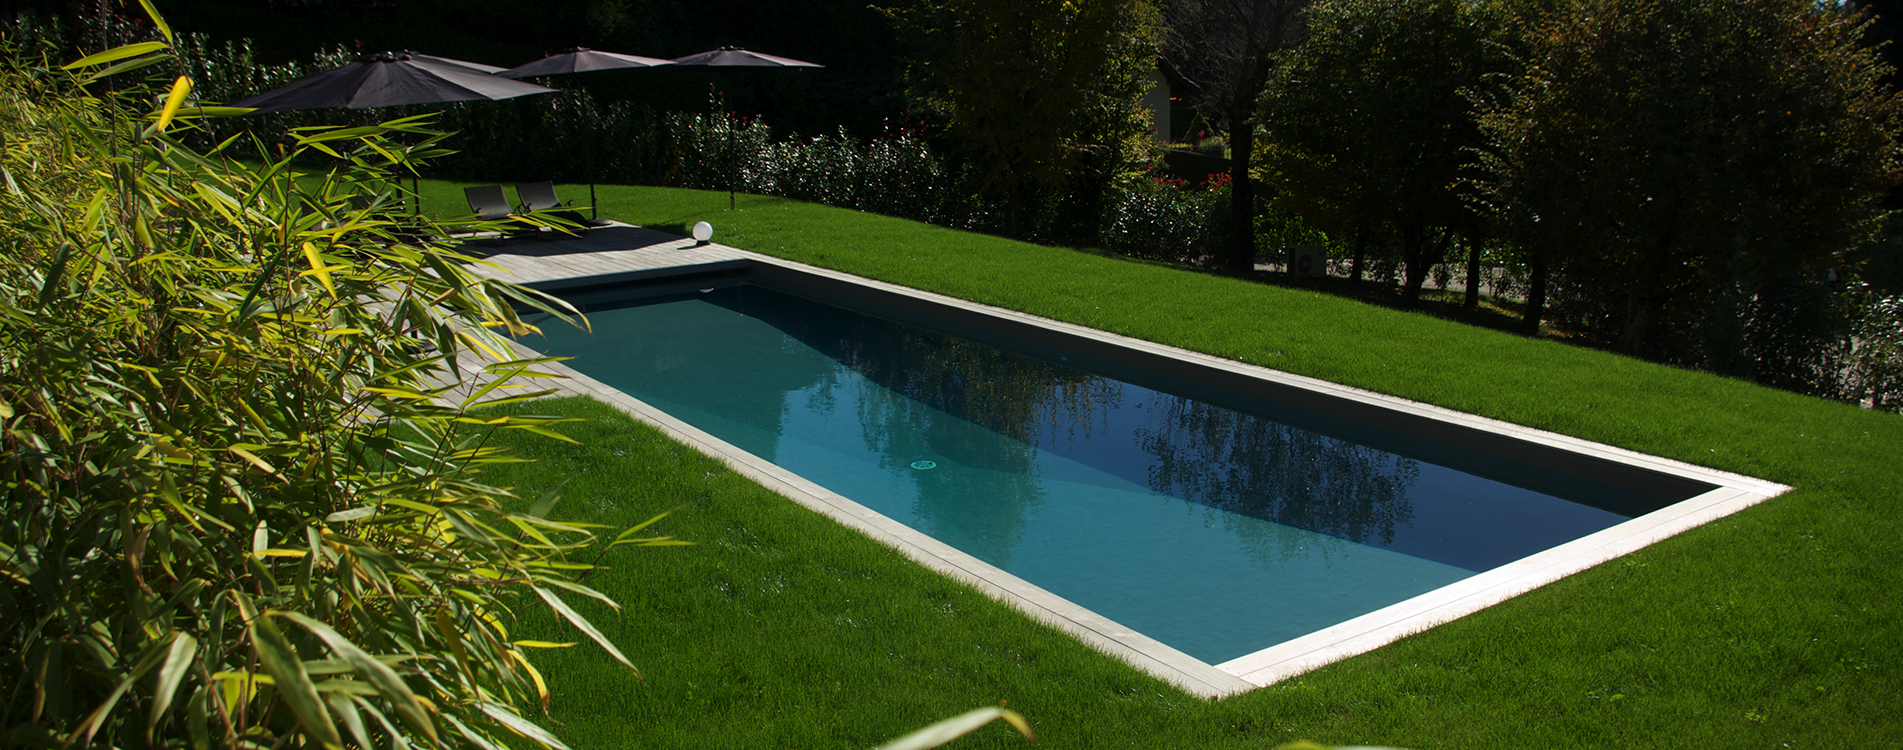 Solutions de traitement eau piscine nicollier piscines for Liner de piscine sur mesure